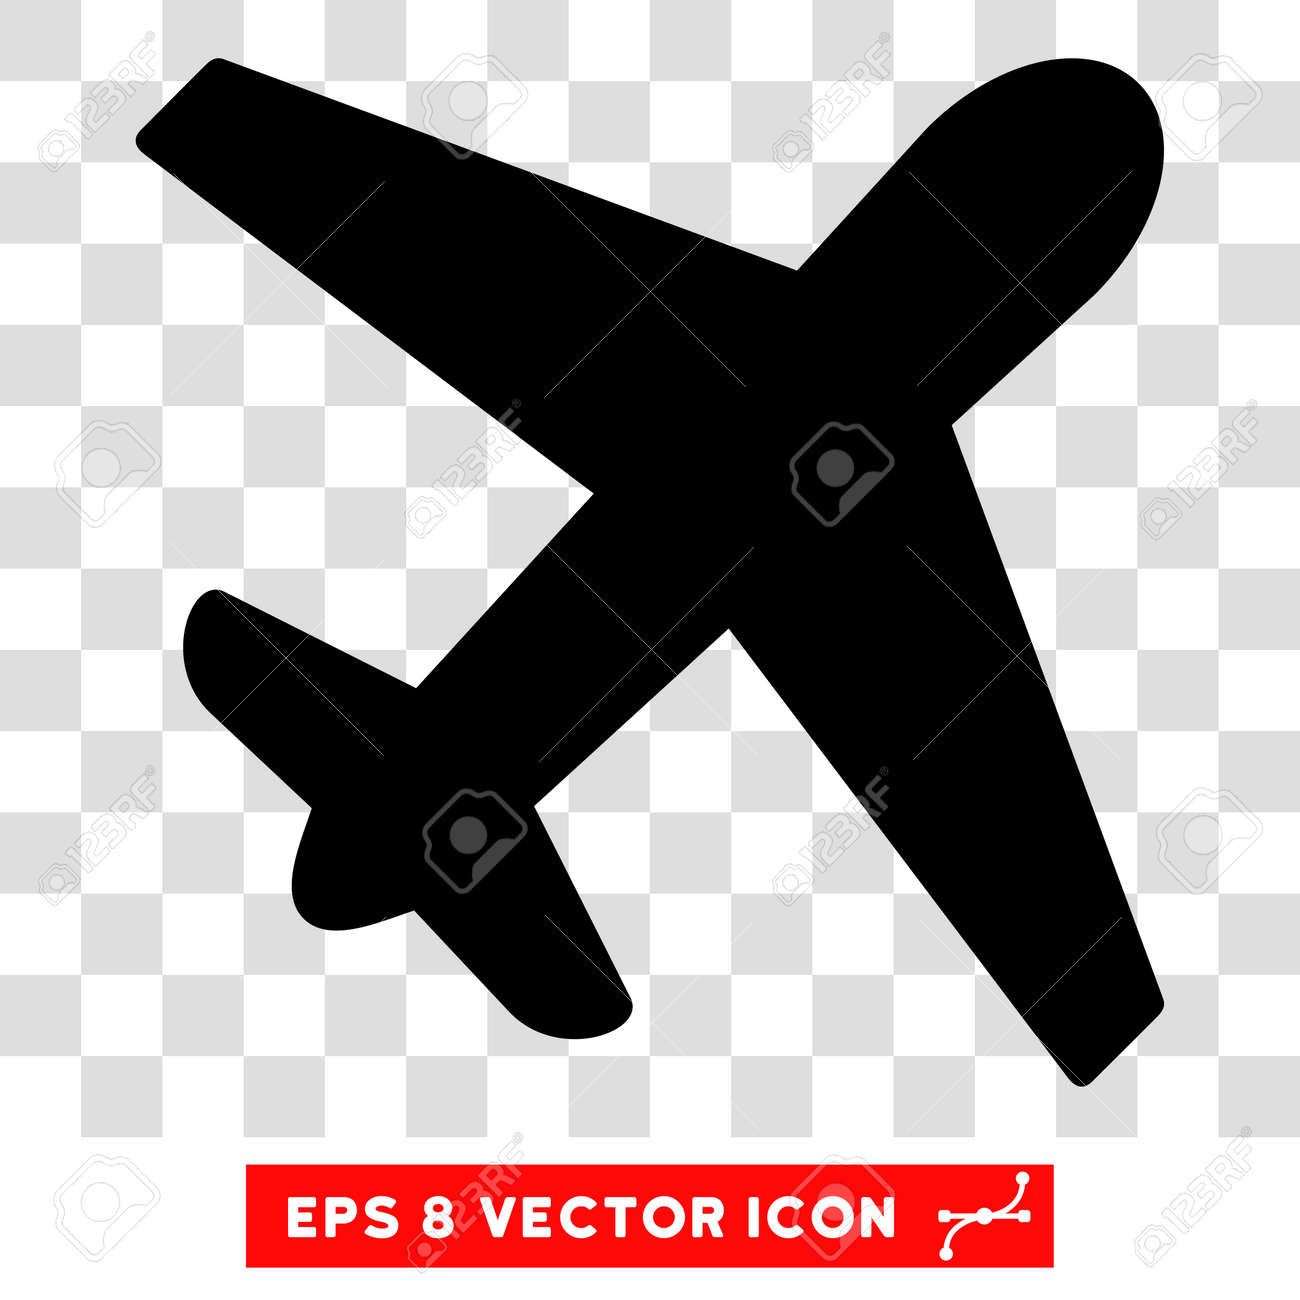 Vector Airplane EPS Icon Illustration Style Is Flat Iconic